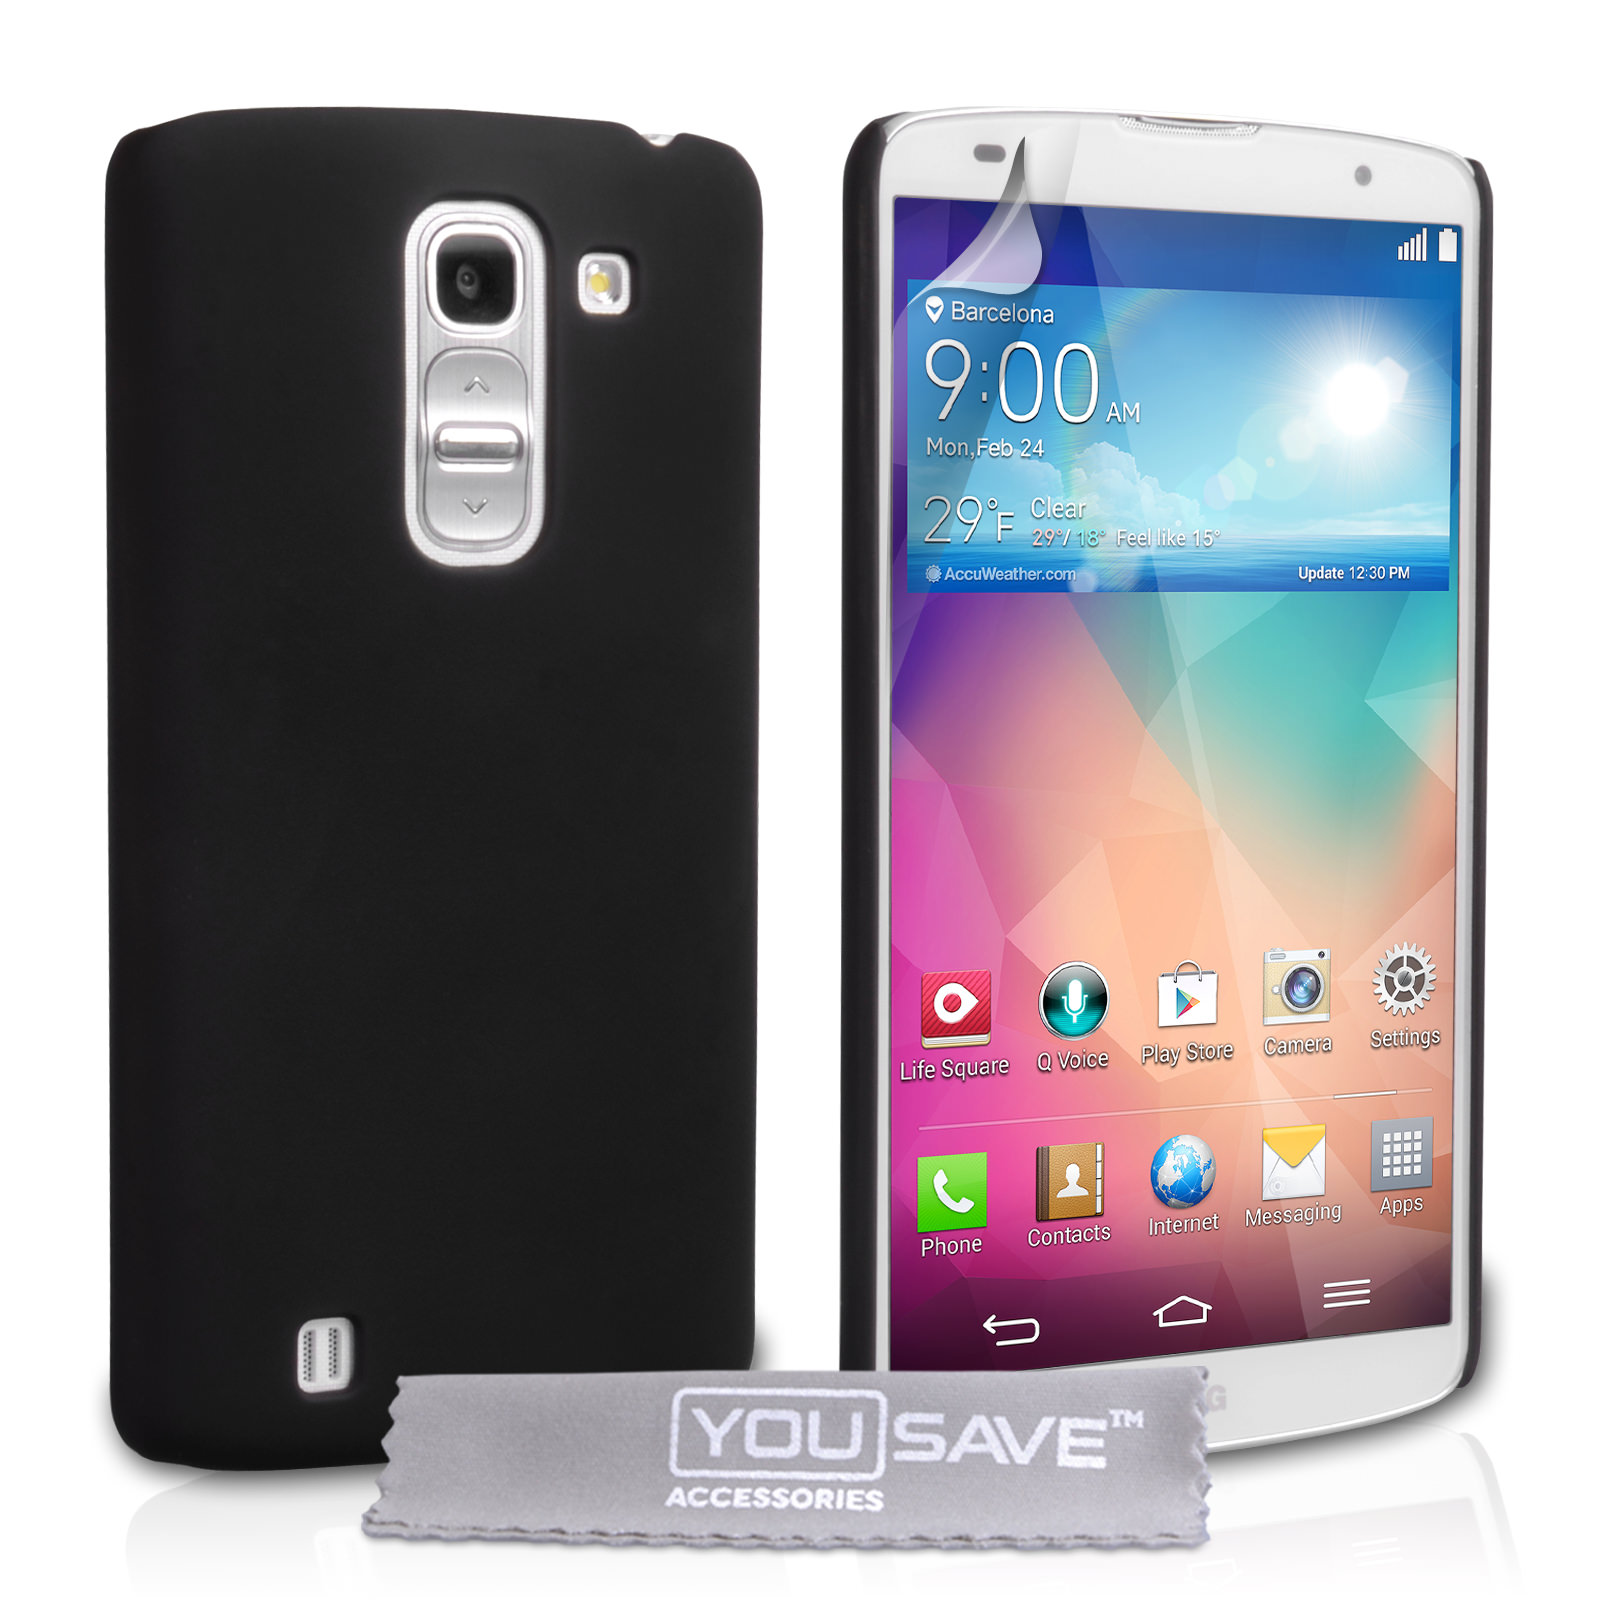 YouSave Accessories LG G Pro 2 Hard Hybrid Case - Black